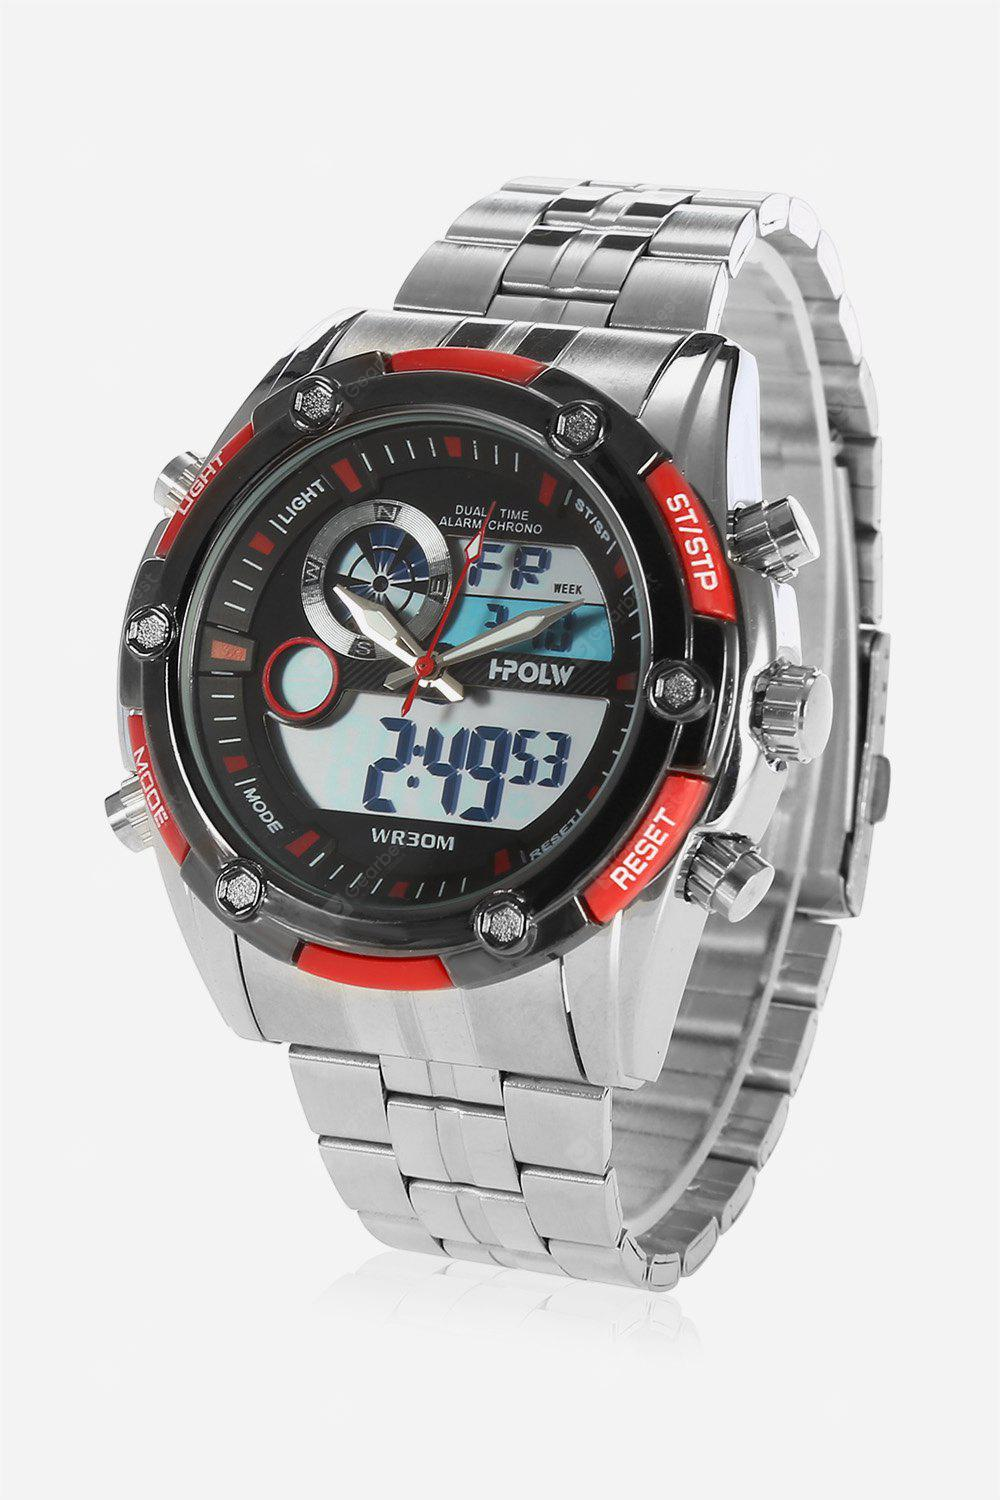 RED HPOLW 618 Analog-digital Watch